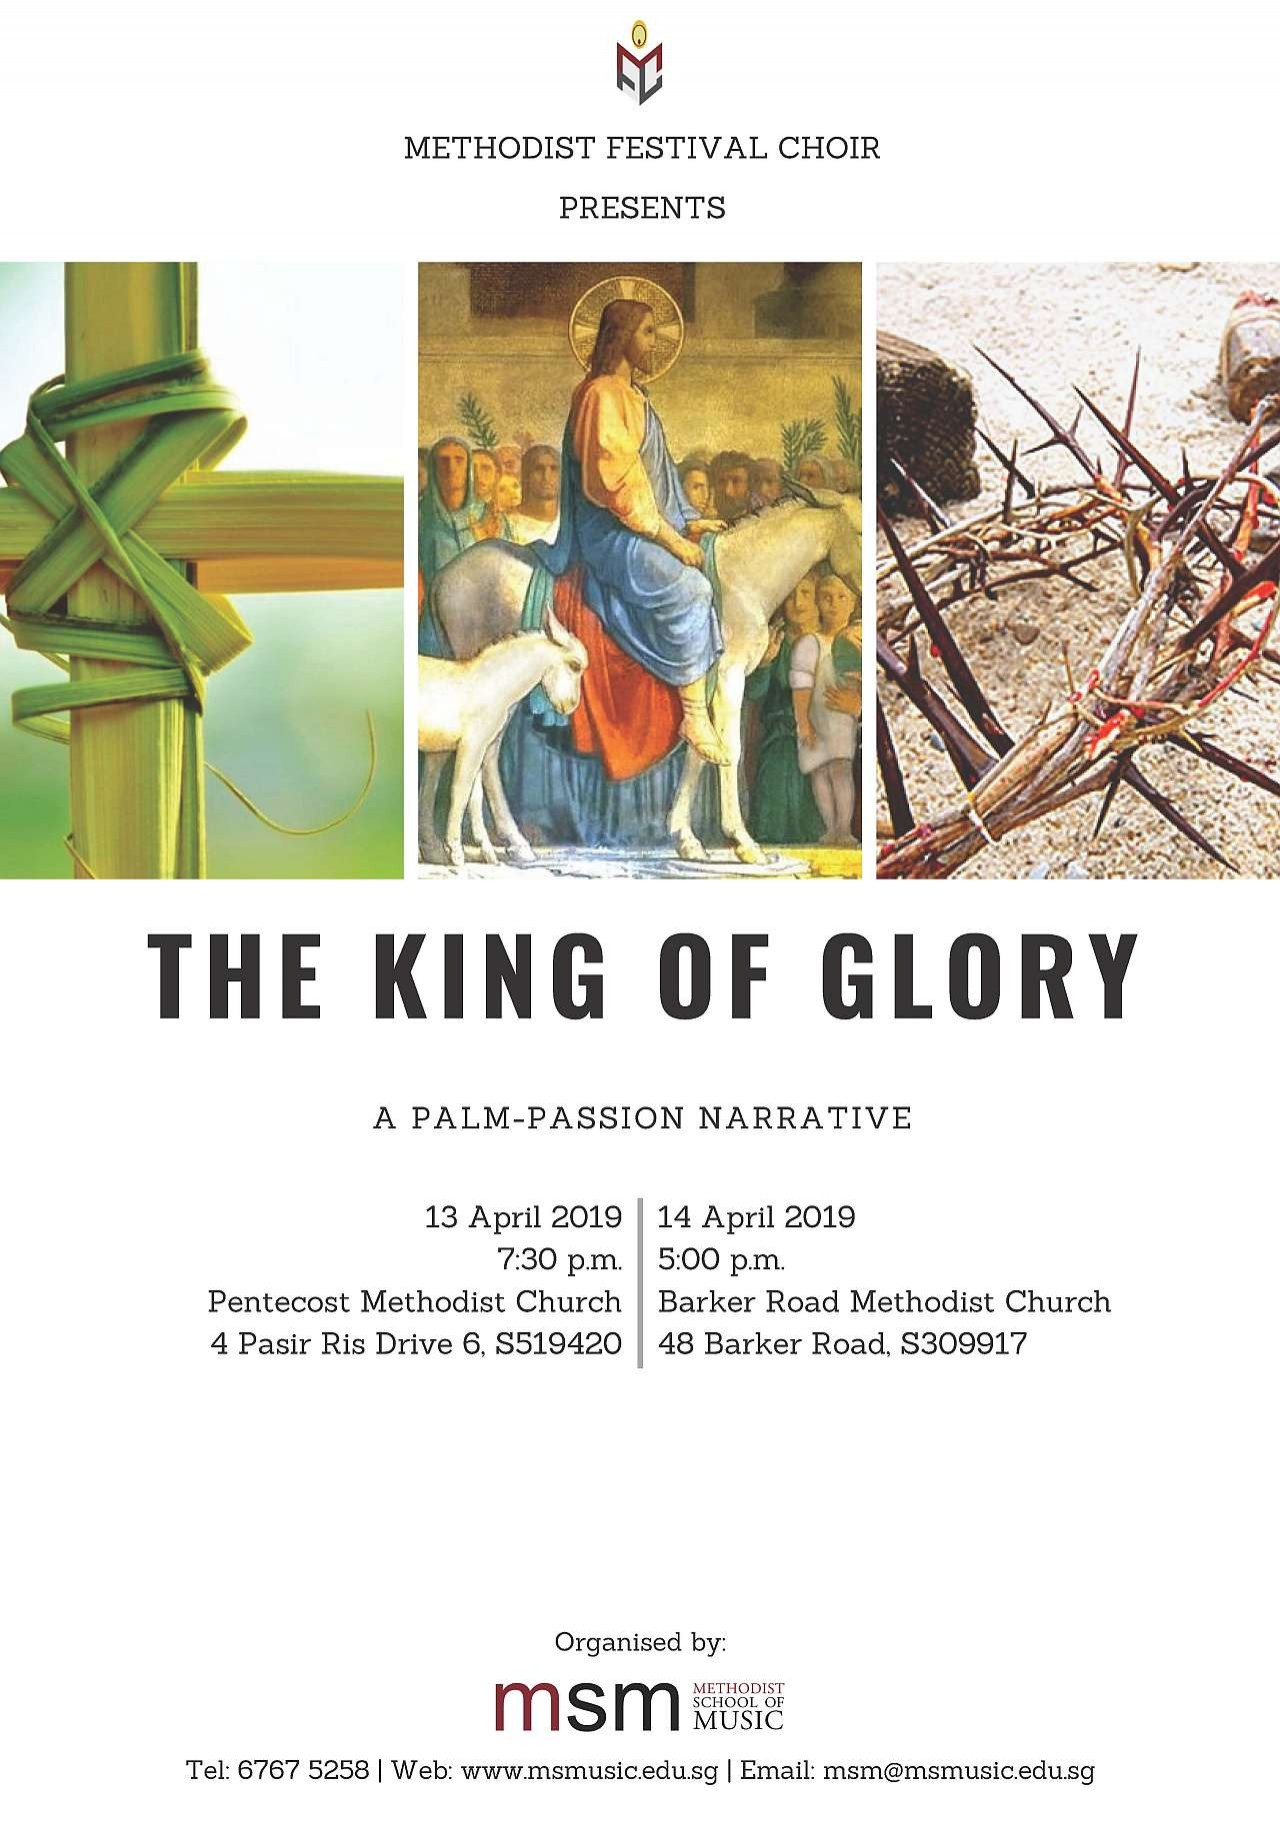 The King of Glory: A Palm-Passion Narrative (MFC)